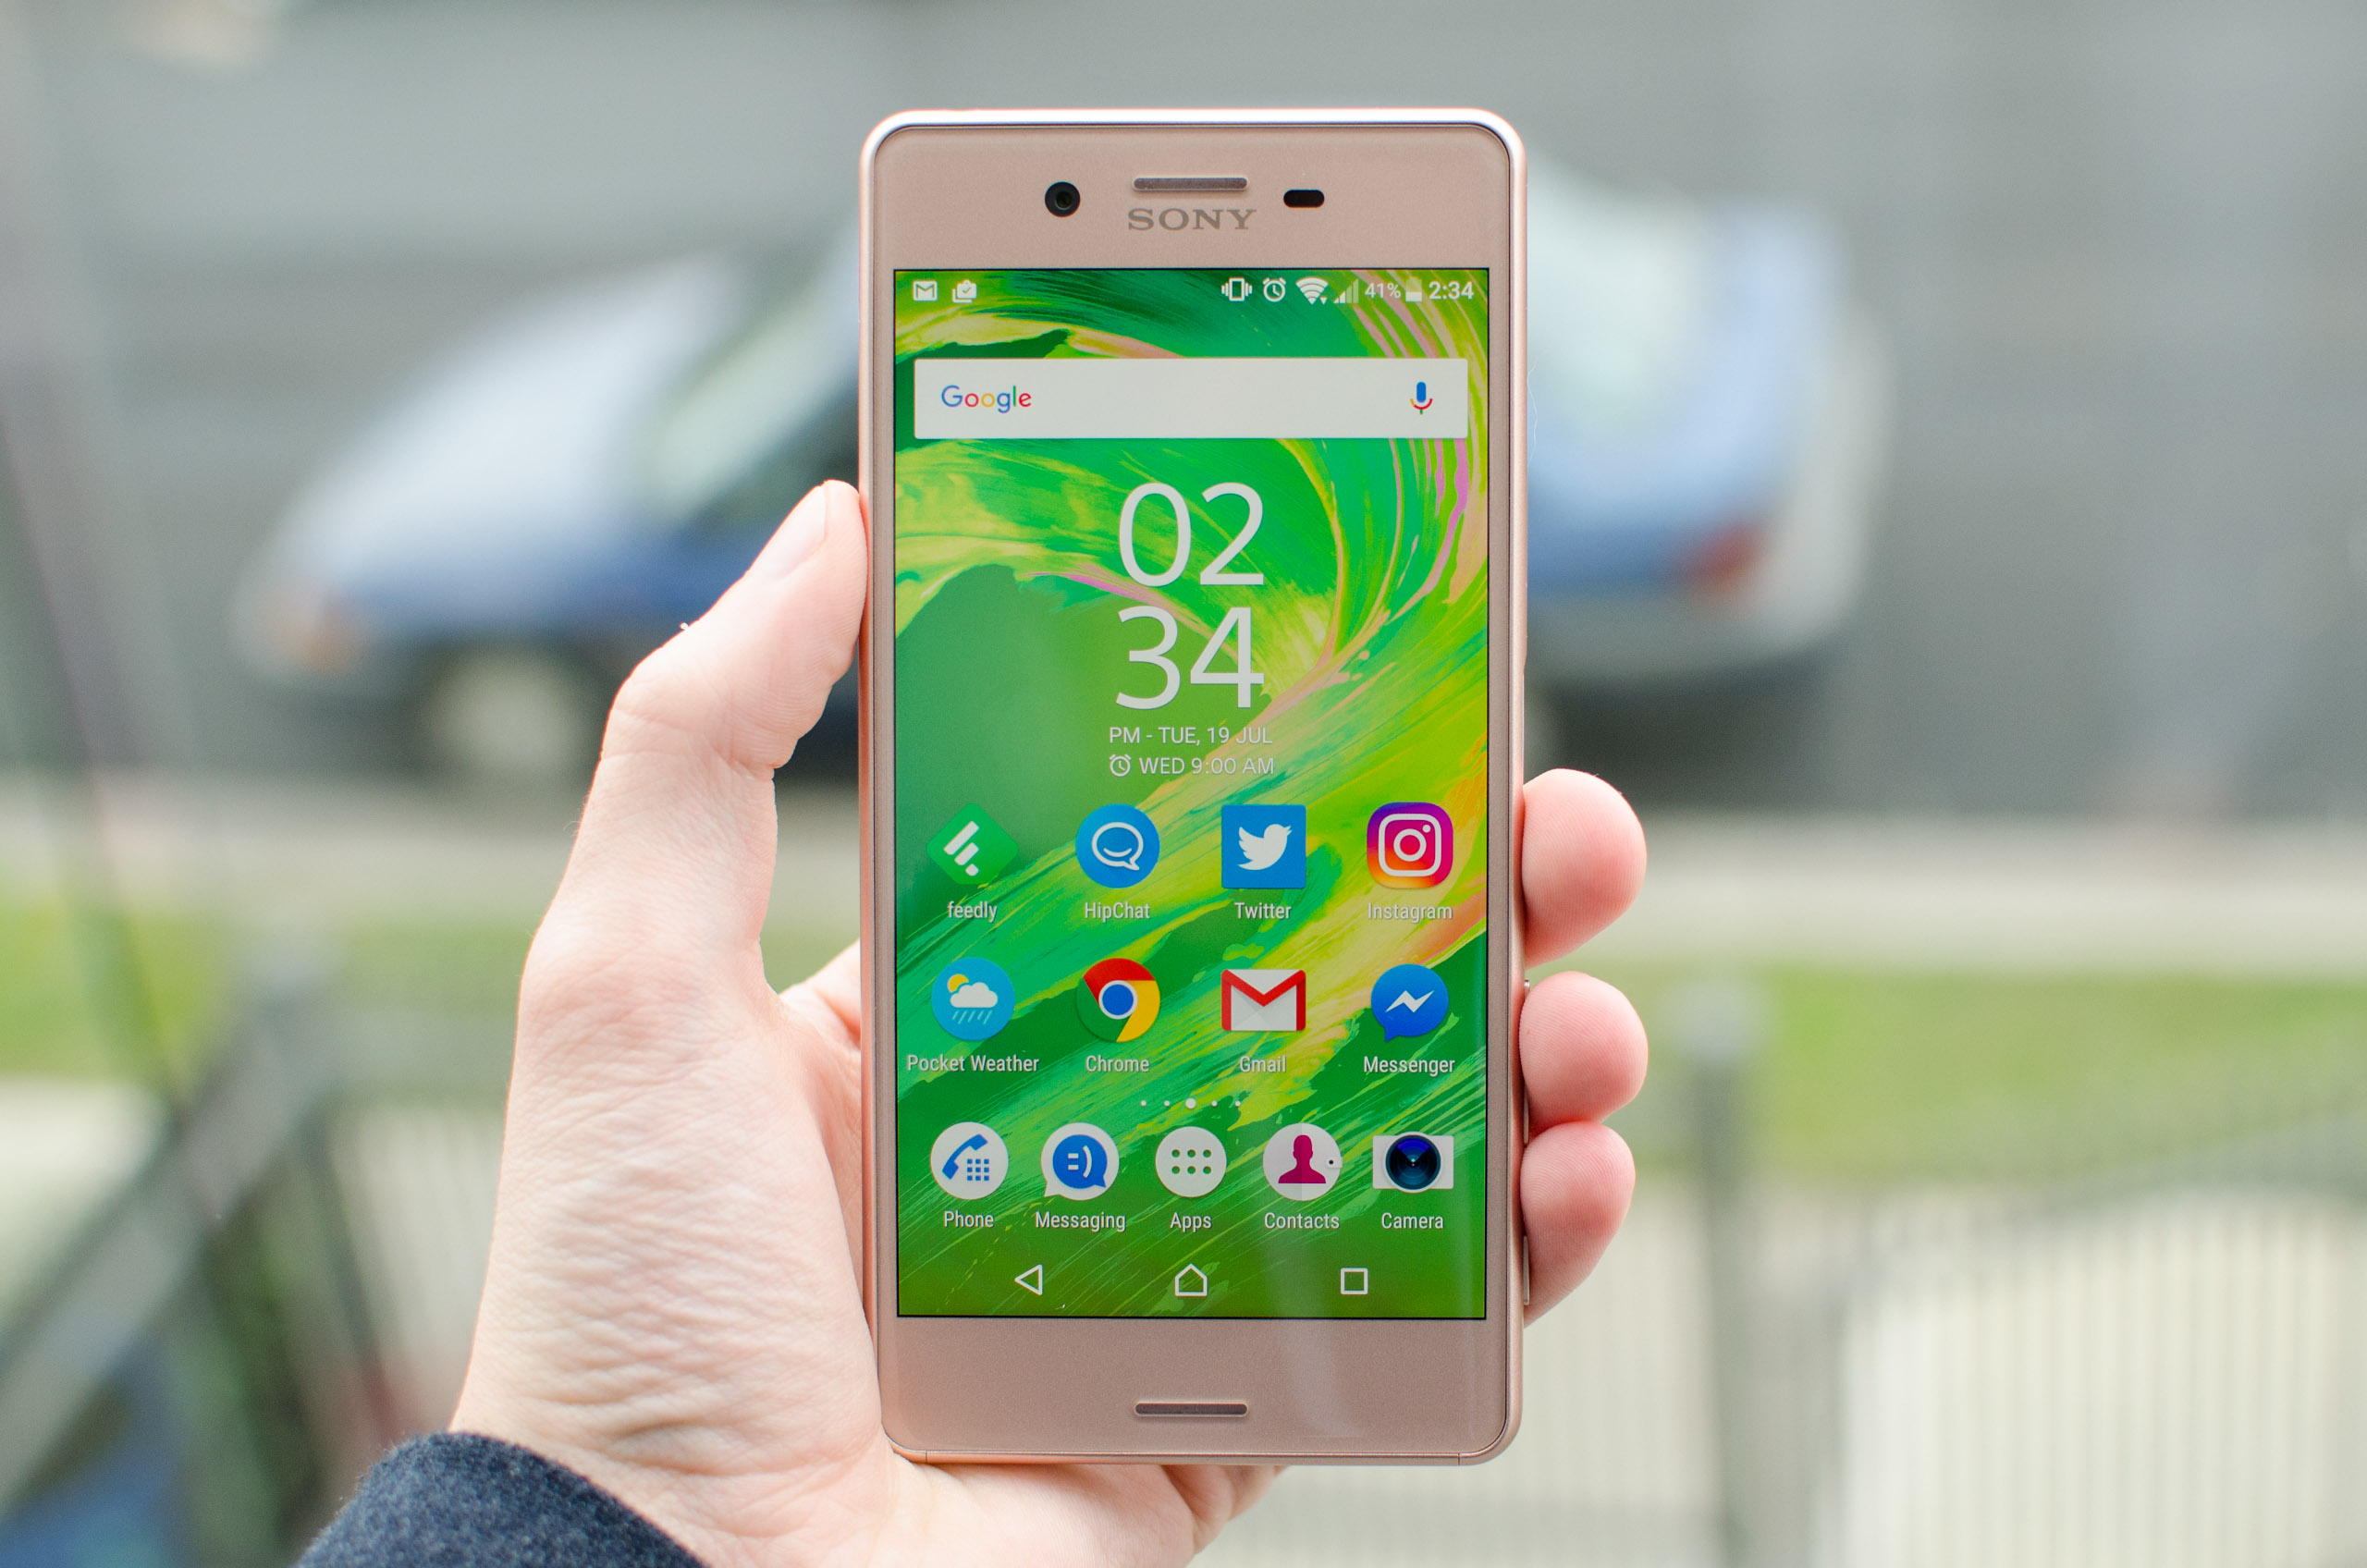 sony, amazon, xperia, sale, discount, xperia x, xperia xa, xperia x performance, deal